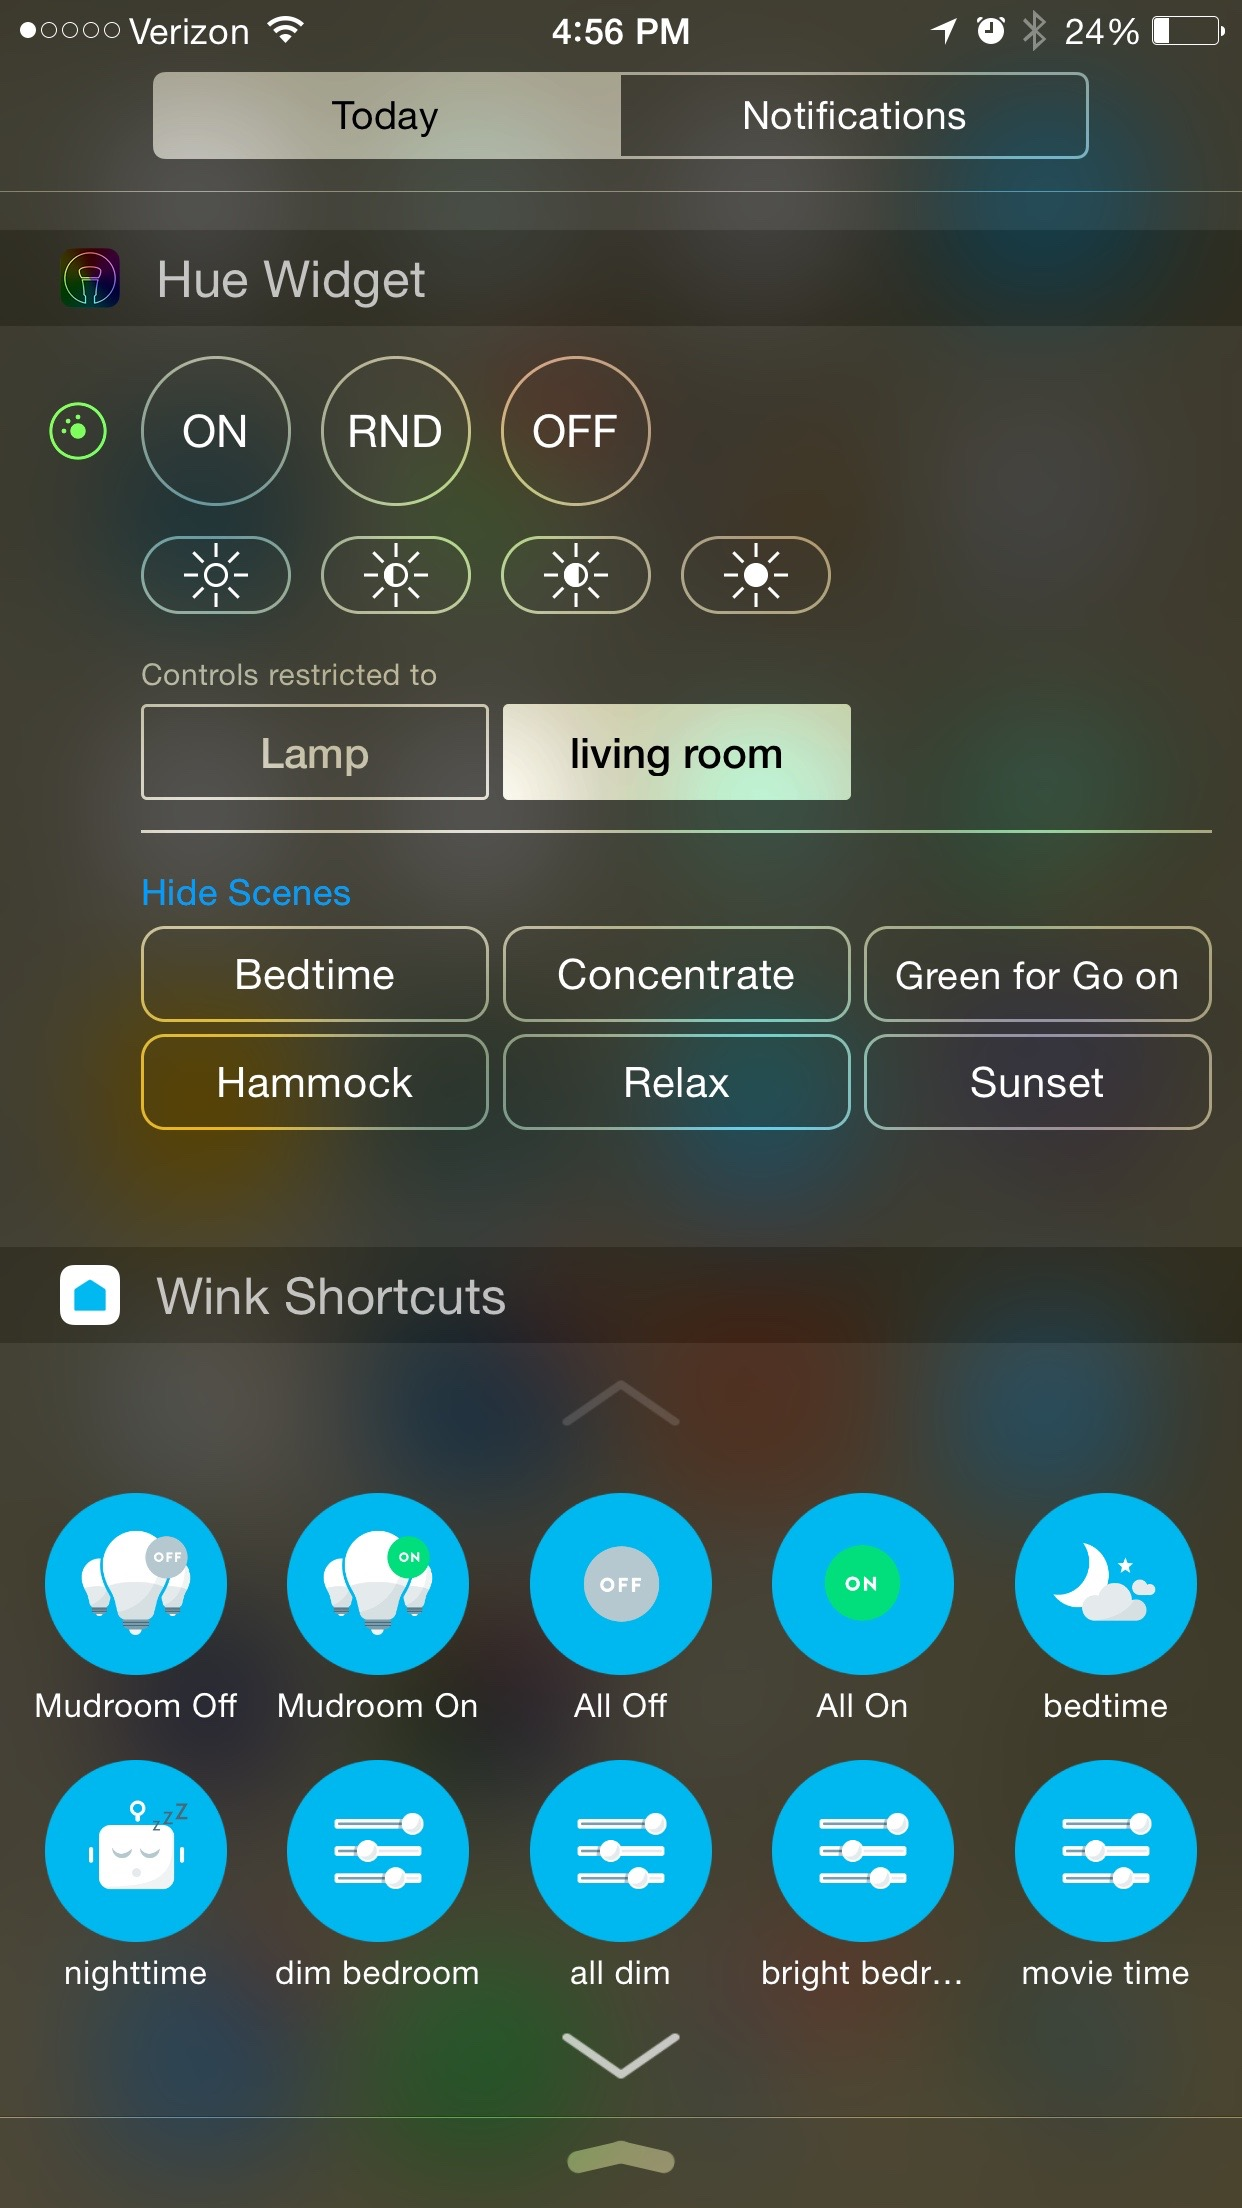 Hue Philips App 5 Apps To Get The Most Out Of Your Philips Hue Lights